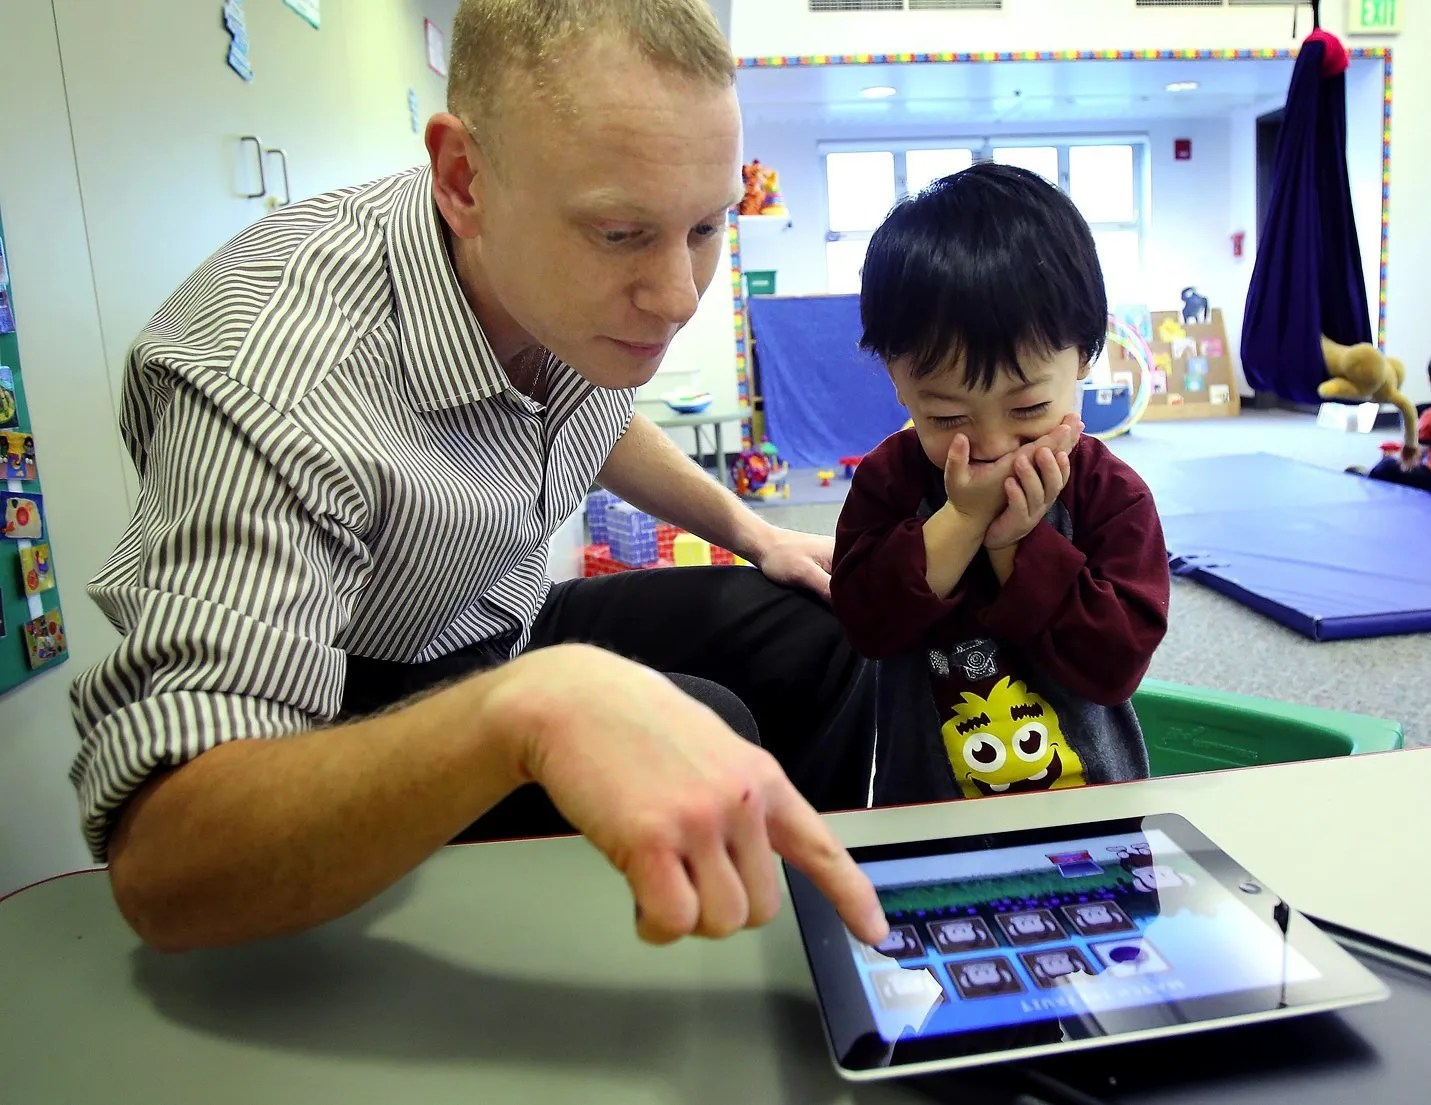 Program Ipad Help 3 Year Old To Communicate And Share